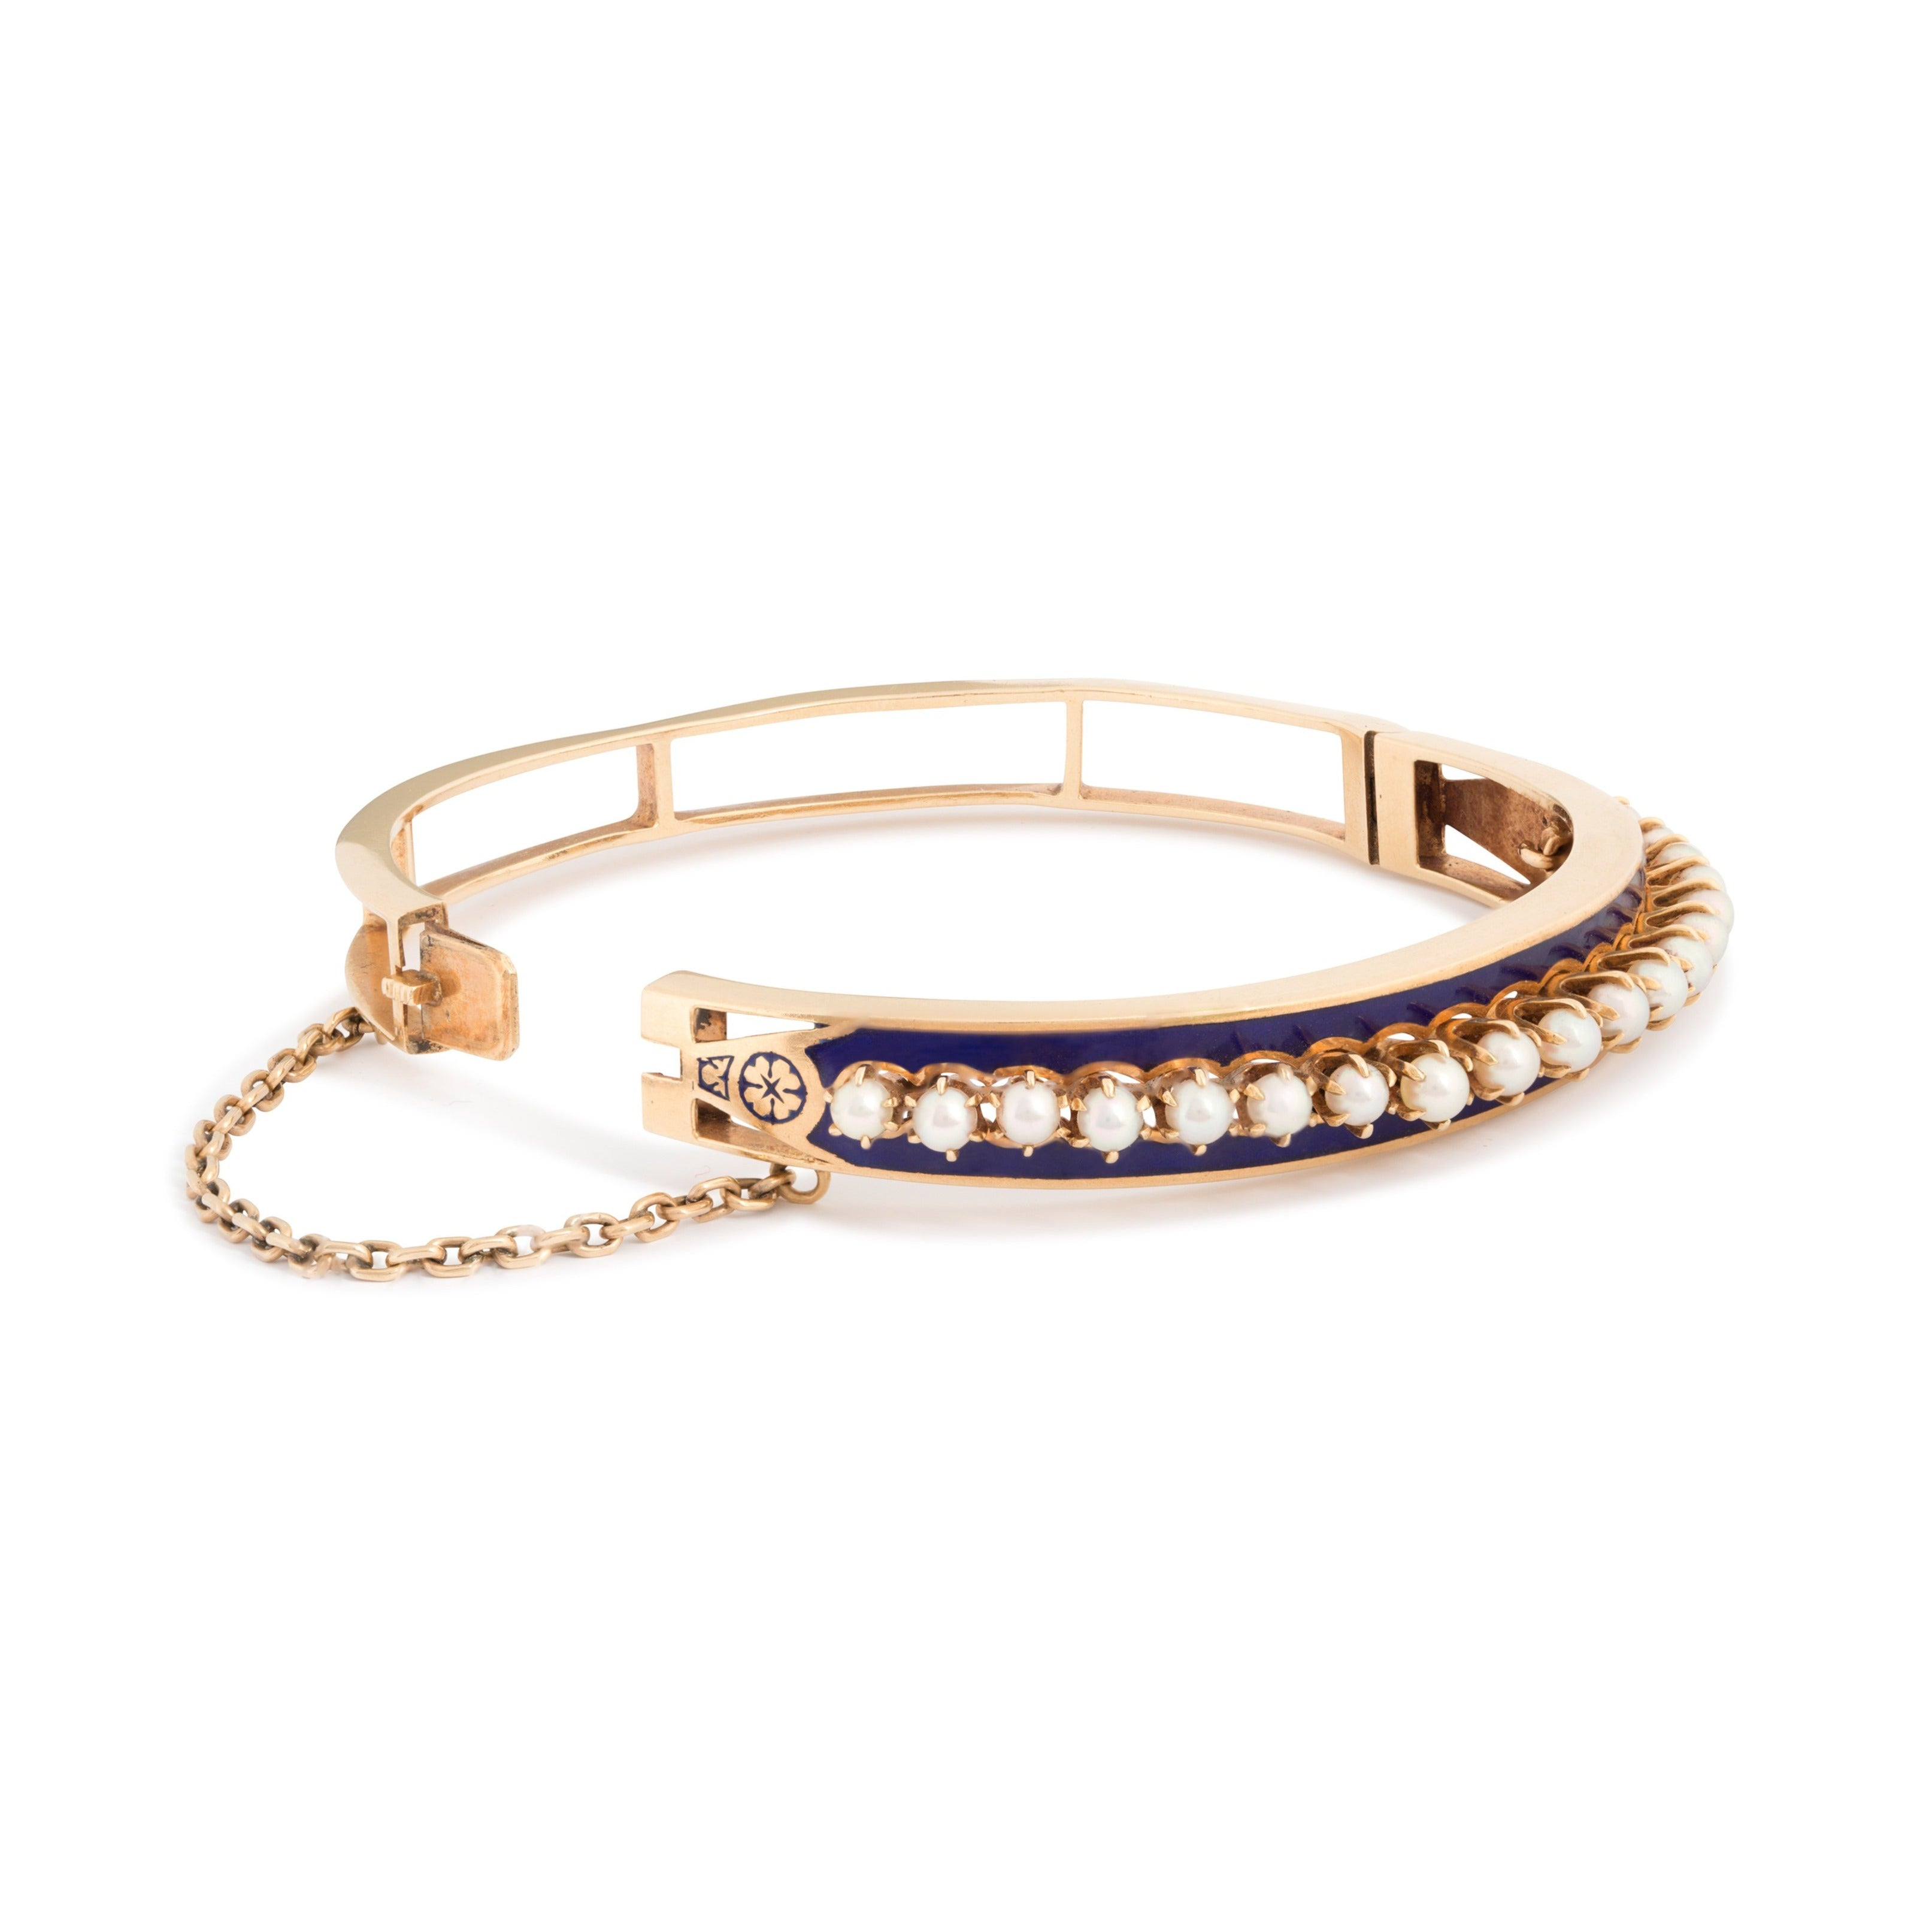 Victorian Pearl, Enamel, and 14K Gold Bangle Bracelet